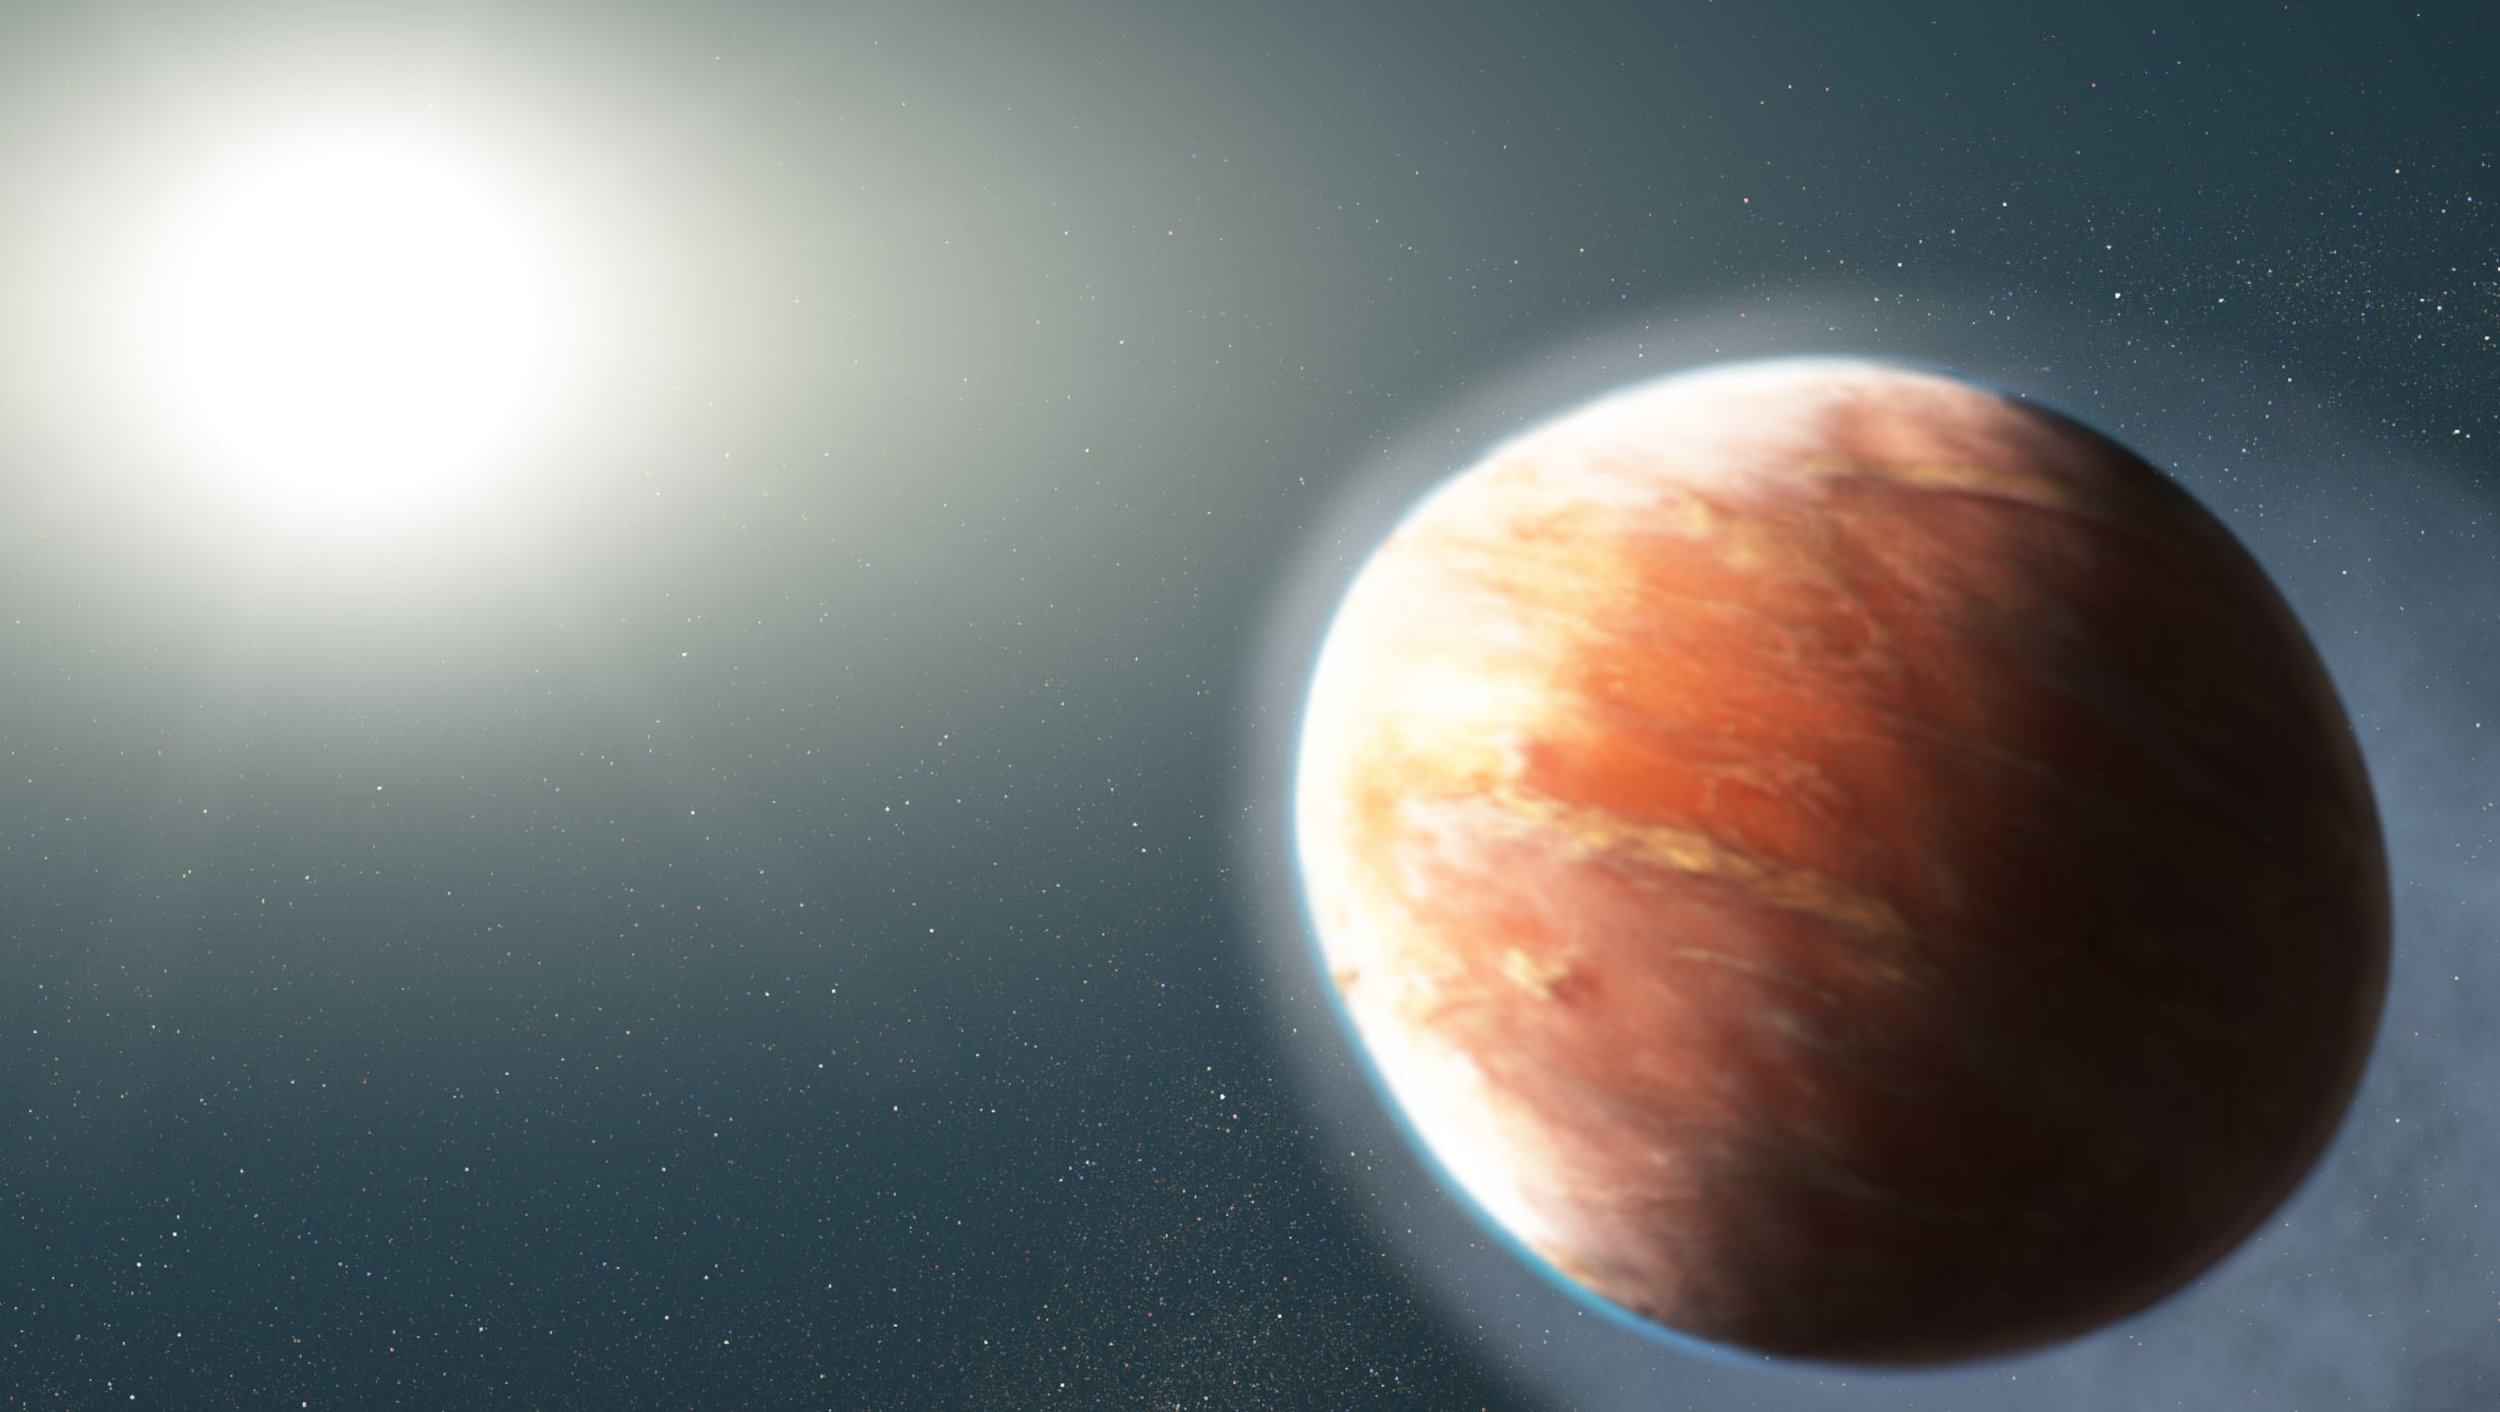 """This artist's illustration shows an alien world that is losing magnesium and iron gas from its atmosphere. The observations represent the first time that so-called """"heavy metals""""—elements more massive than hydrogen and helium—have been detected escaping from a hot Jupiter, a large gaseous exoplanet orbiting very close to its star.The planet, known as WASP-121b, orbits a star brighter and hotter than the Sun. The planet is so dangerously close to its star that its upper atmosphere reaches a blazing 4,600 degrees Fahrenheit. A torrent of ultraviolet light from the host star is heating the planet's upper atmosphere, which is causing the magnesium and iron gas to escape into space. Observations by Hubble's Space Telescope Imaging Spectrograph have detected the spectral signatures of magnesium and iron far away from the planet.The planet's """"hugging"""" distance from the star means that it is on the verge of being ripped apart by the star's gravitational tidal forces. The powerful gravitational forces have altered the planet's shape so that it appears more football shaped.The WASP-121 system is about 900 light-years from Earth. - Image Credits: NASA, ESA, and J. Olmsted (STScI)"""